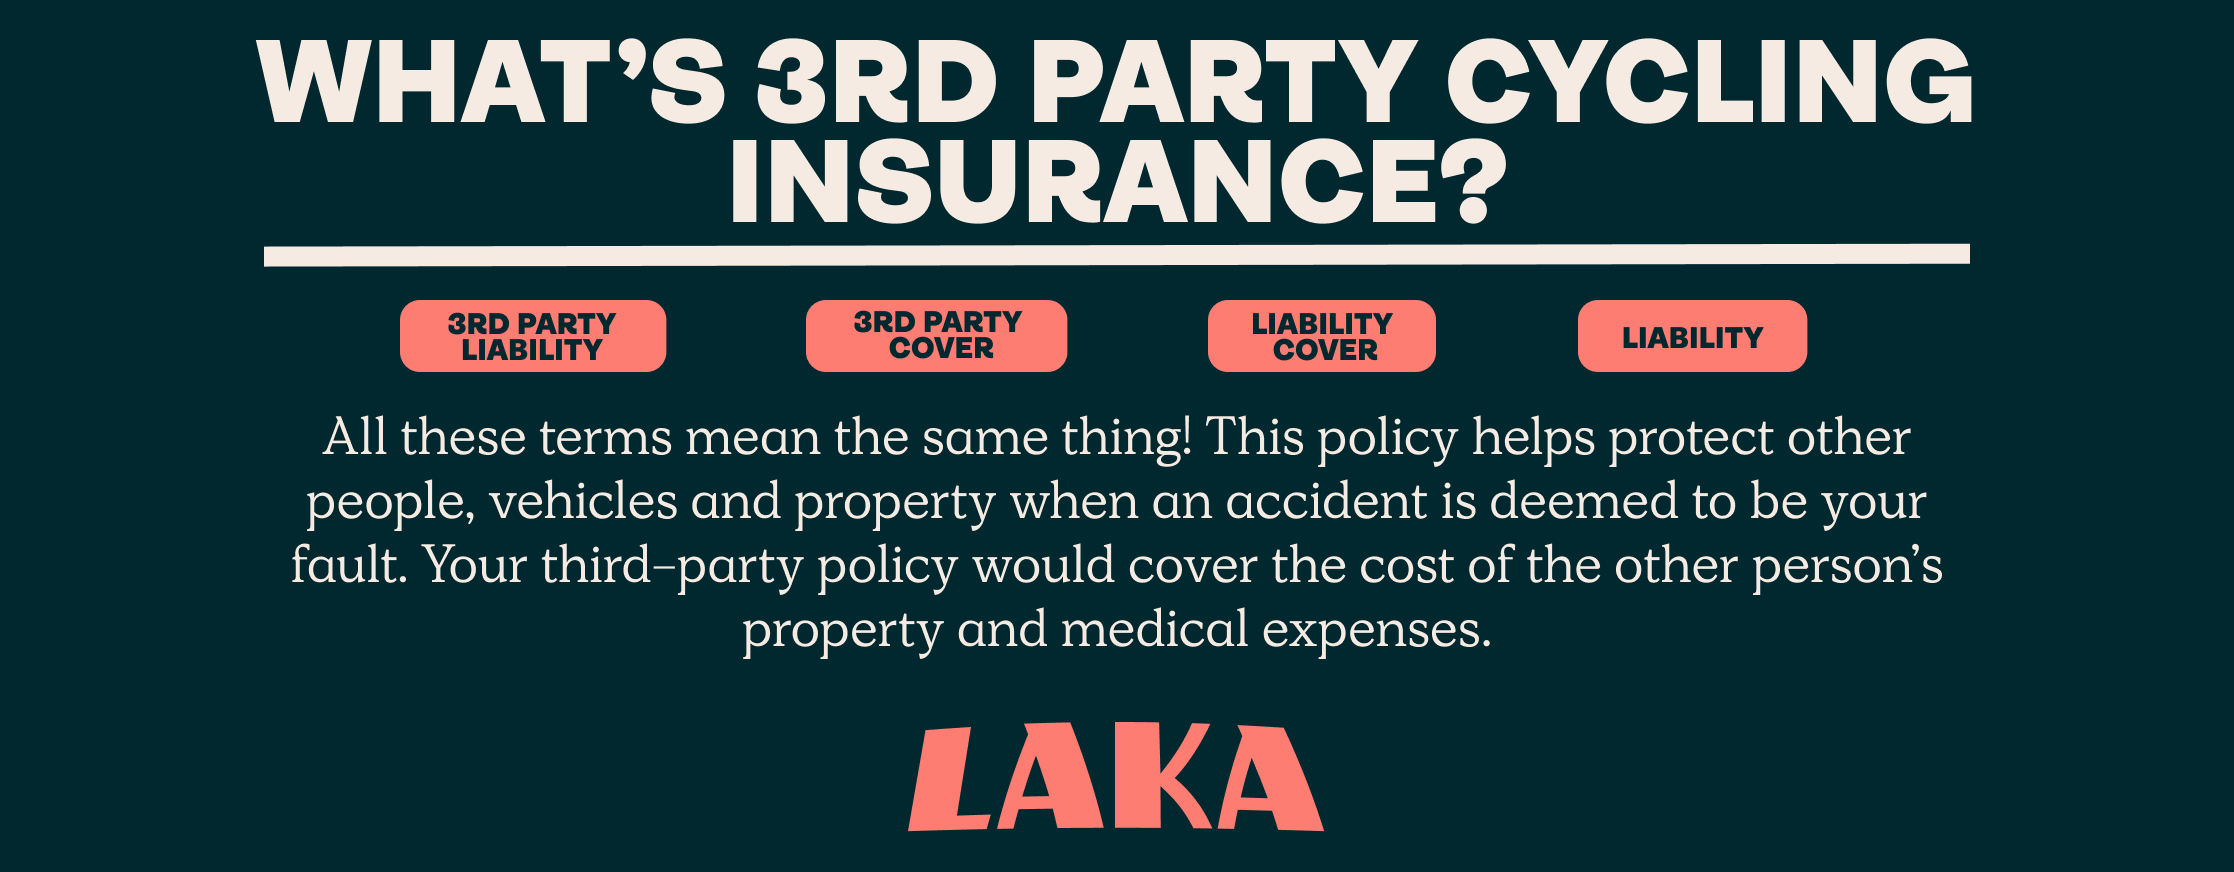 What is third party cycling insurance?